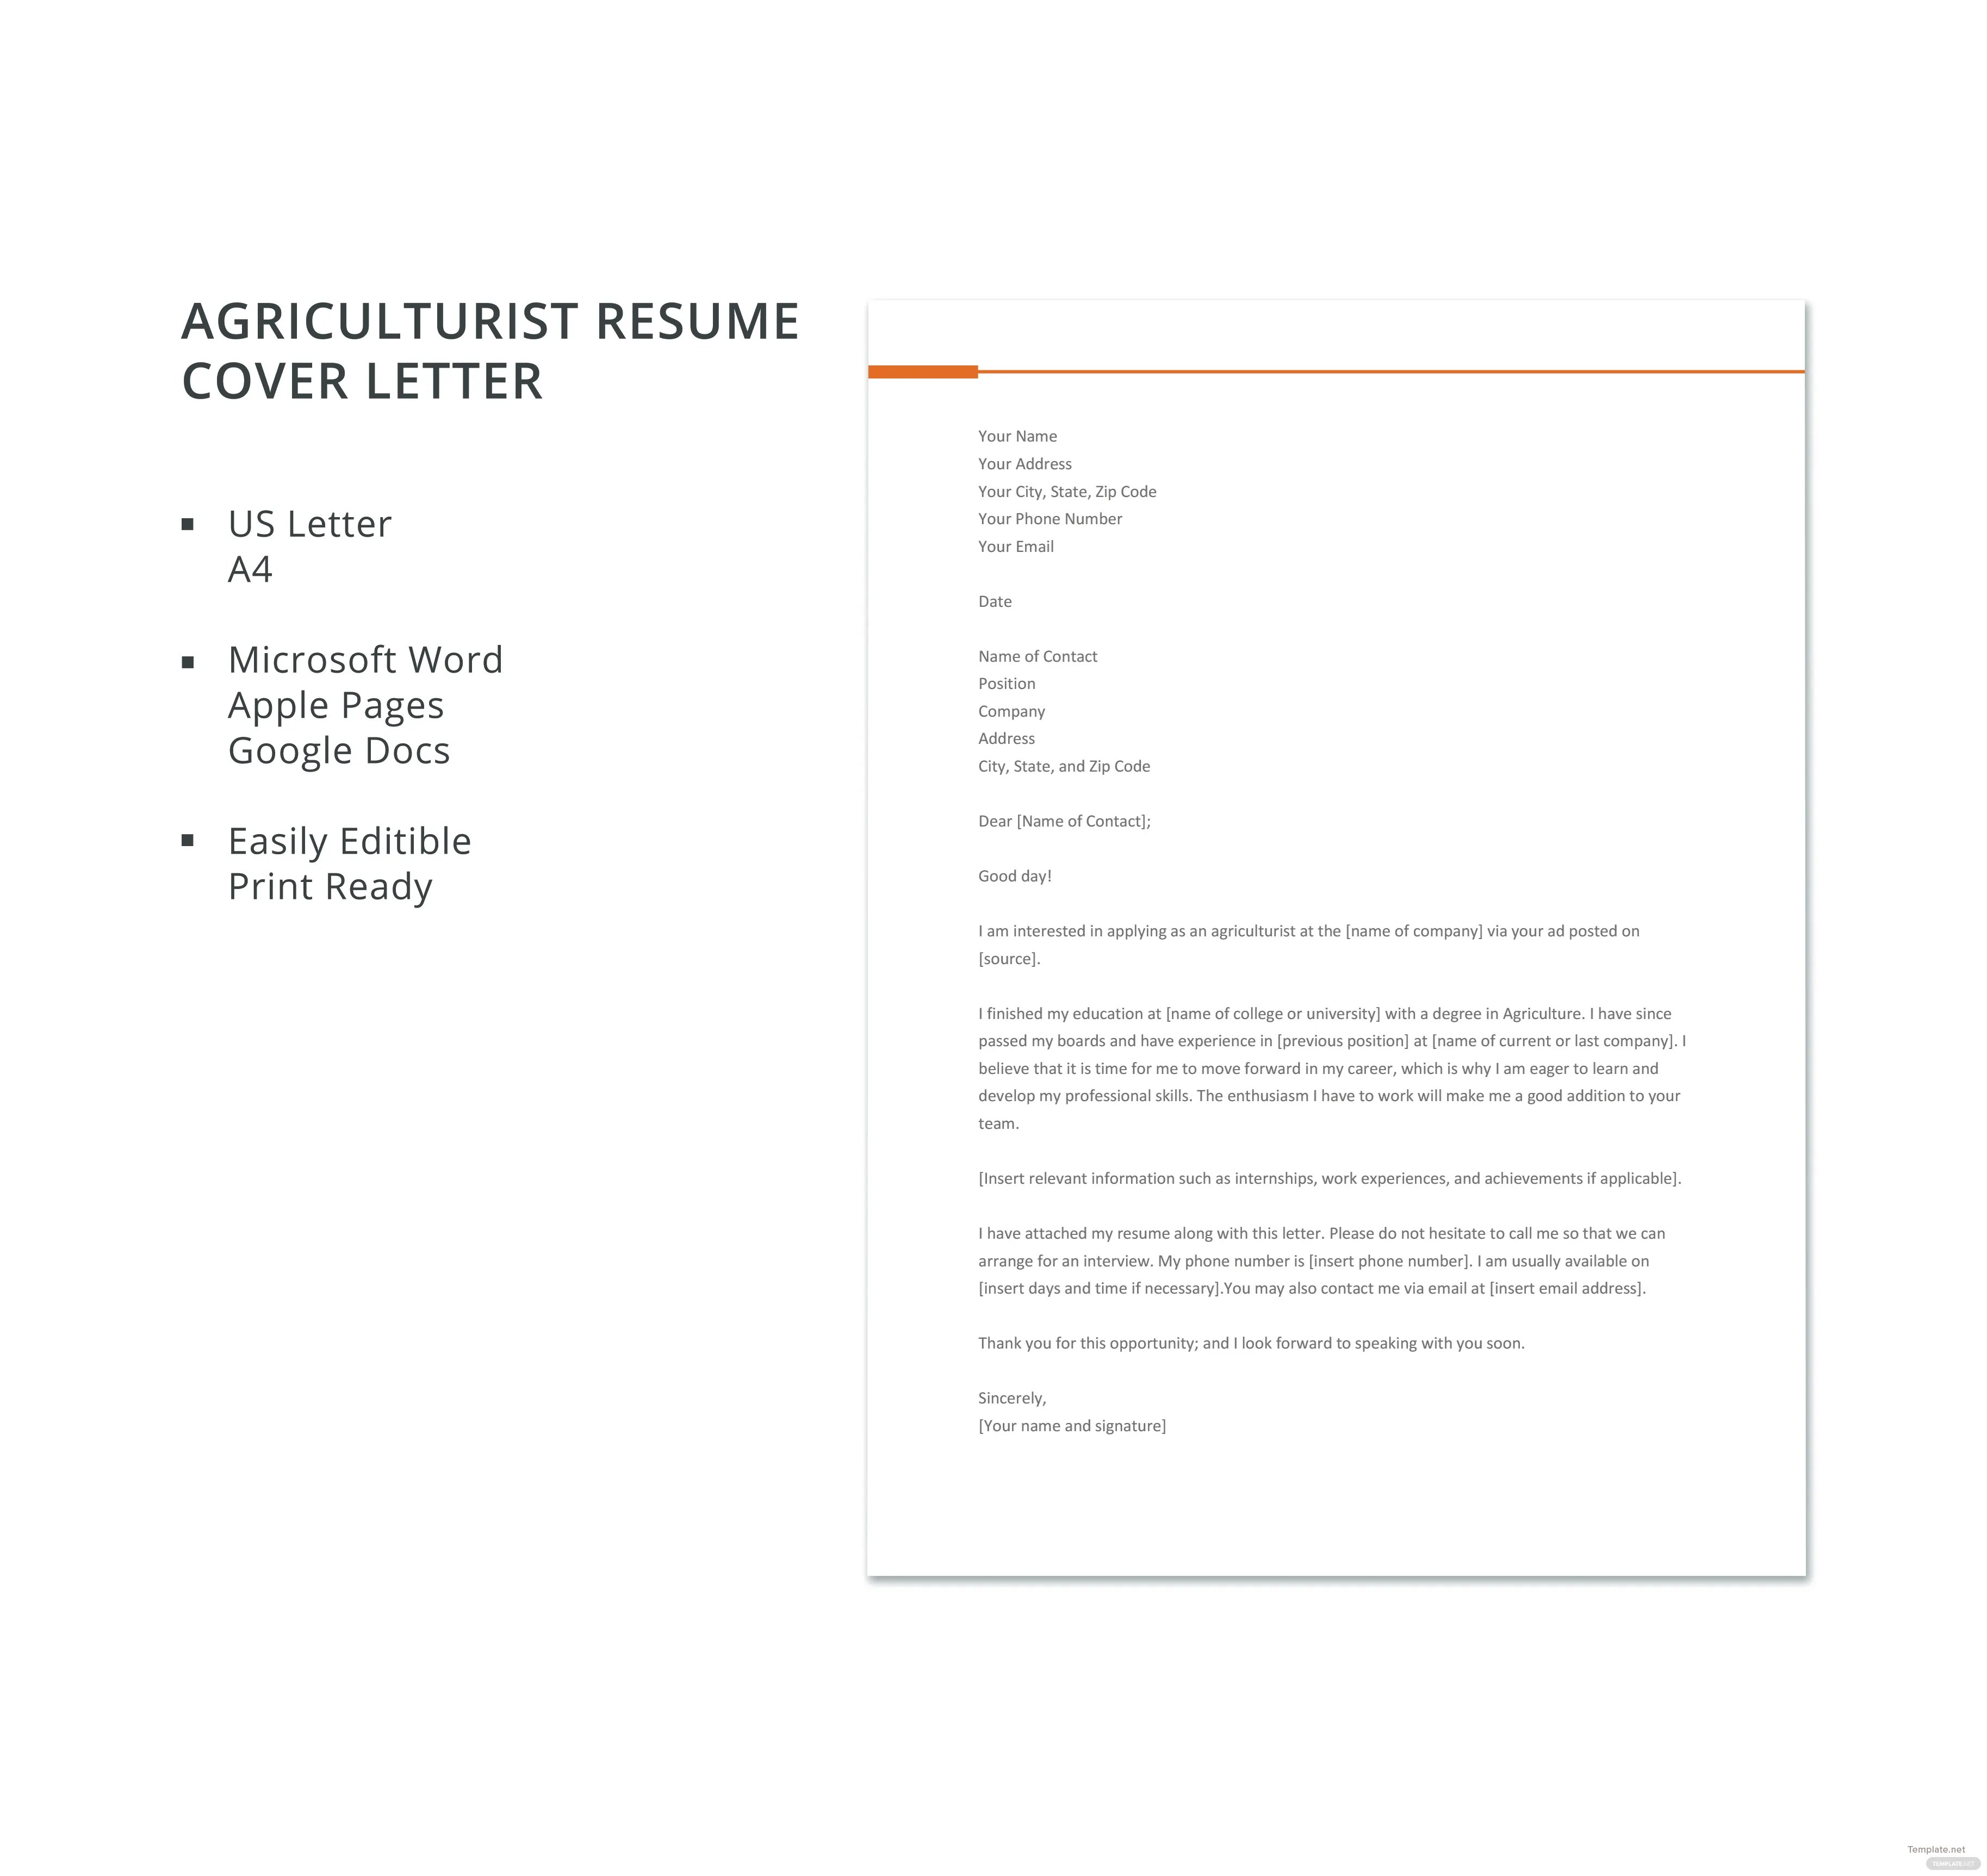 Free Agriculturist Resume Cover Letter Template in Microsoft Word Apple Pages Google Docs